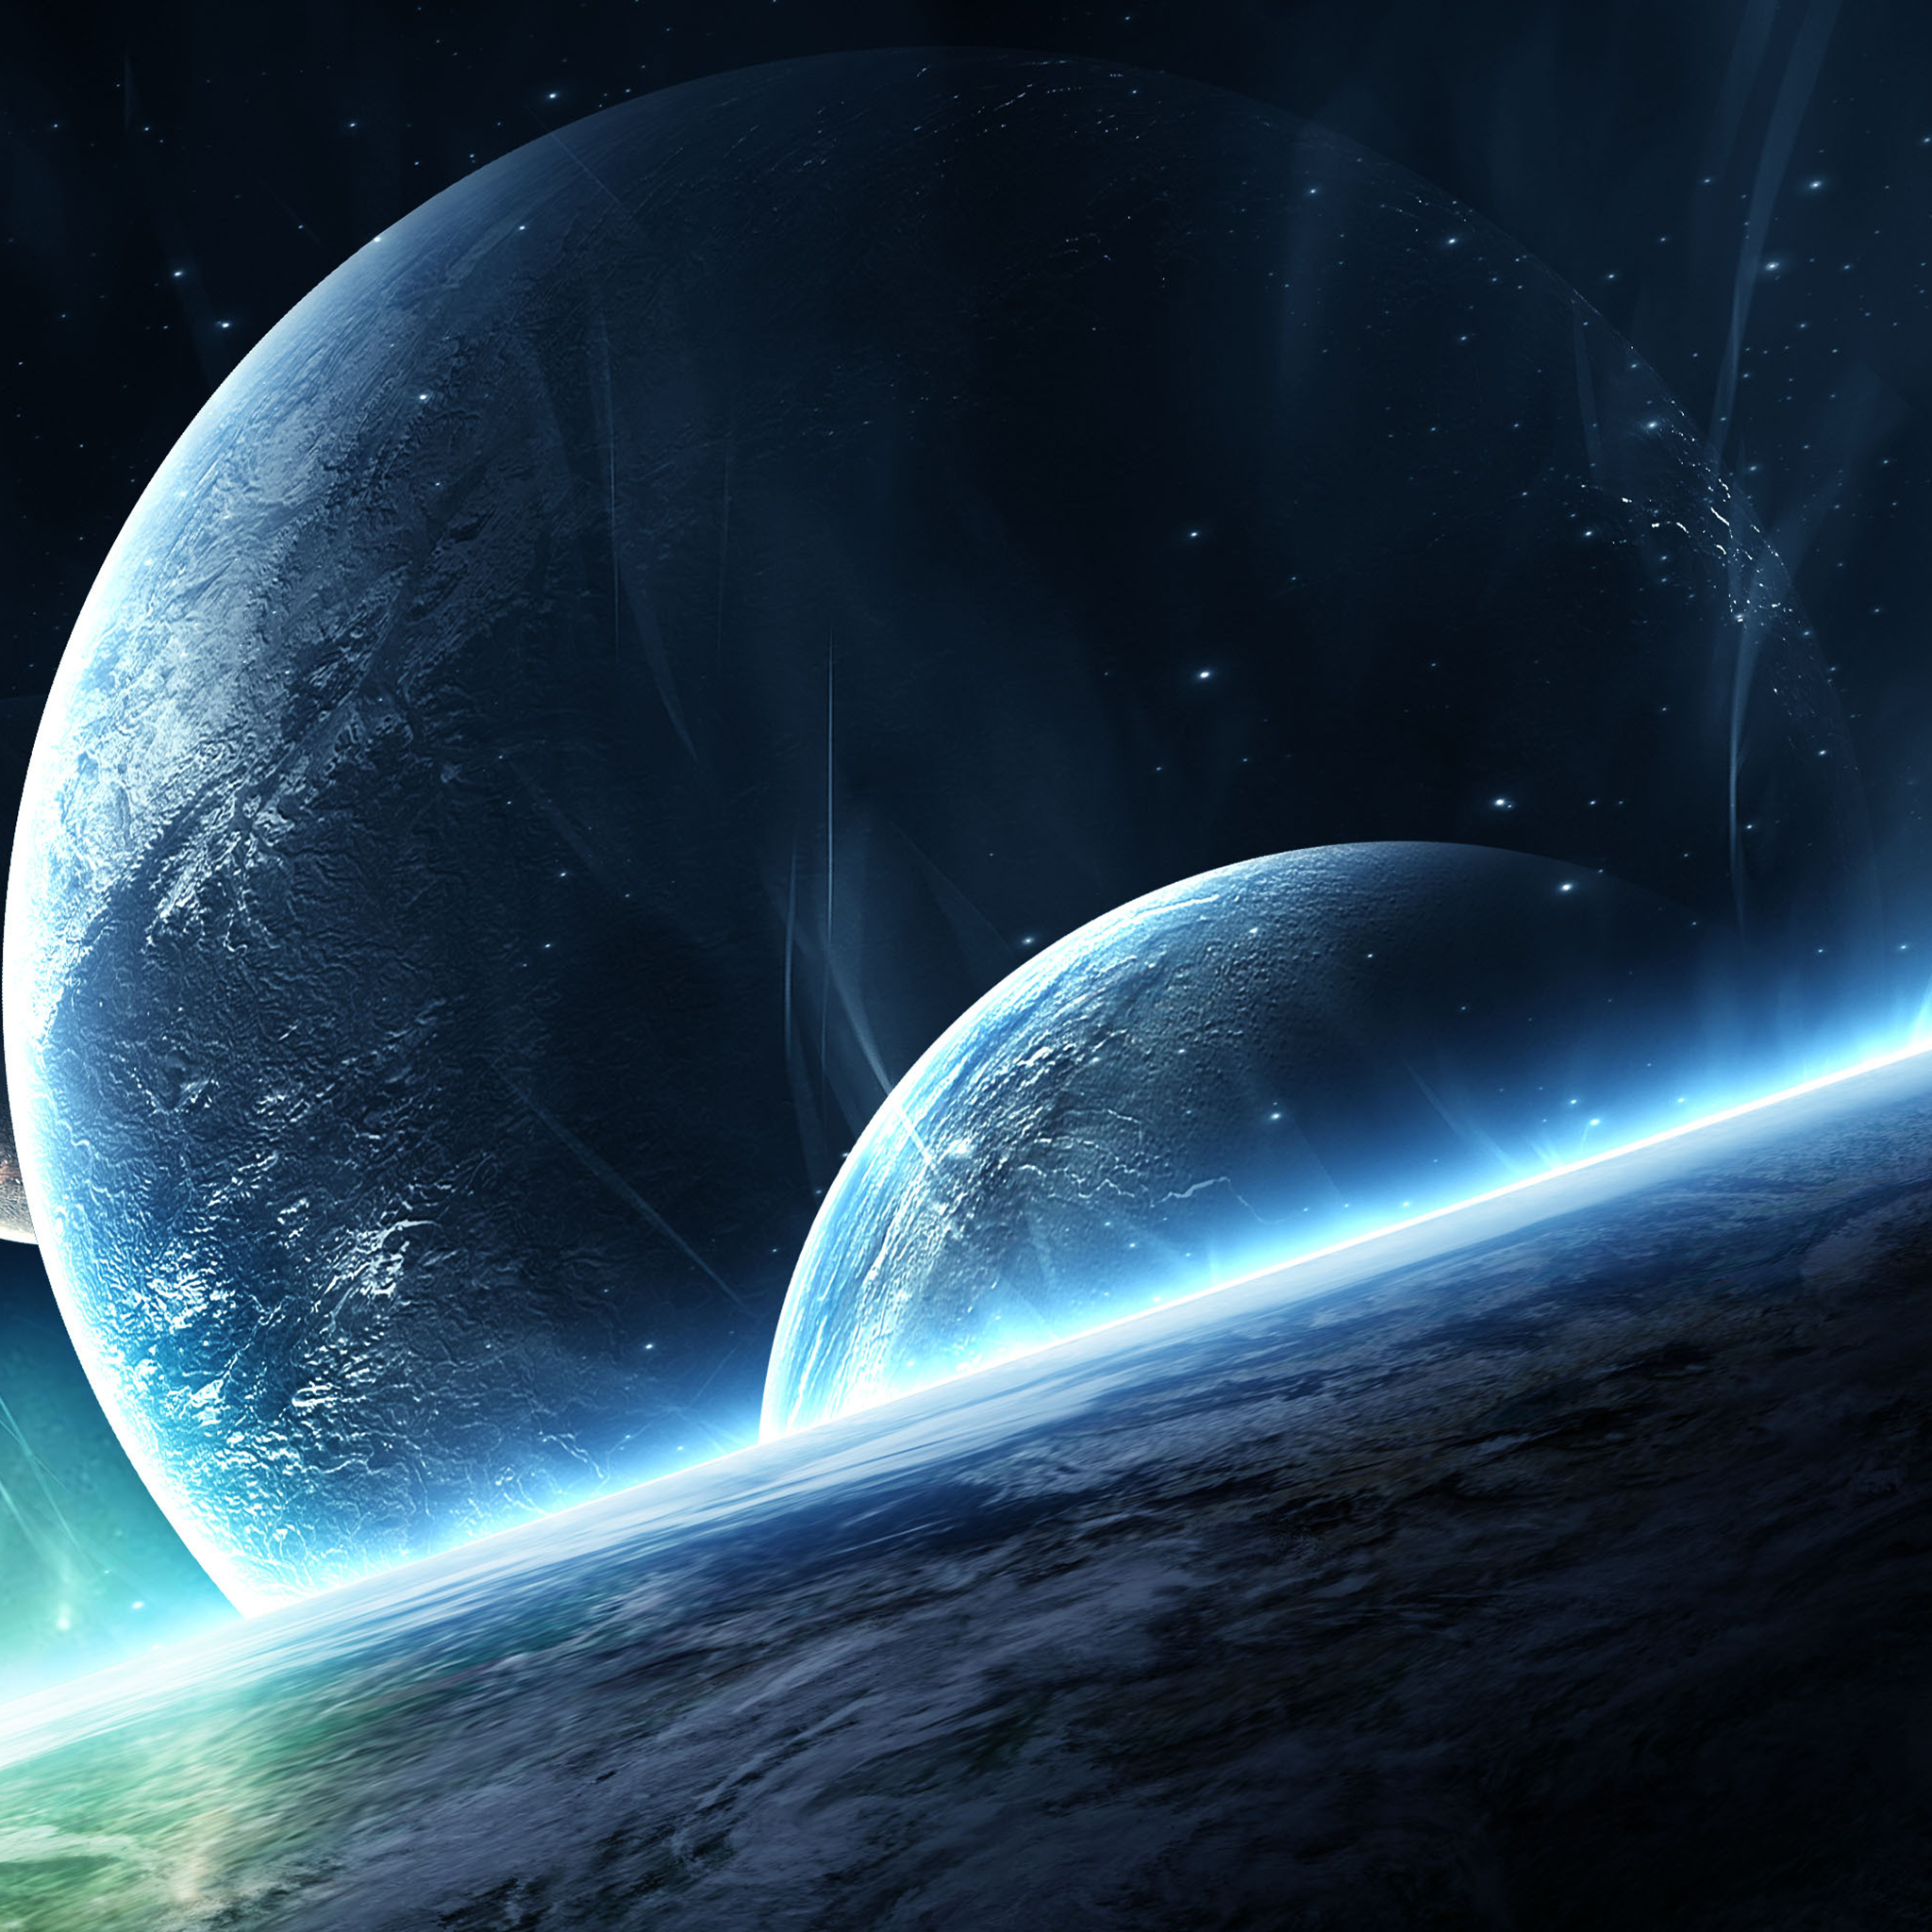 Space Wallpaper Retina Ipad wallpapers wallpapers fond d ecran fonds d ecran ipad ipad iphone